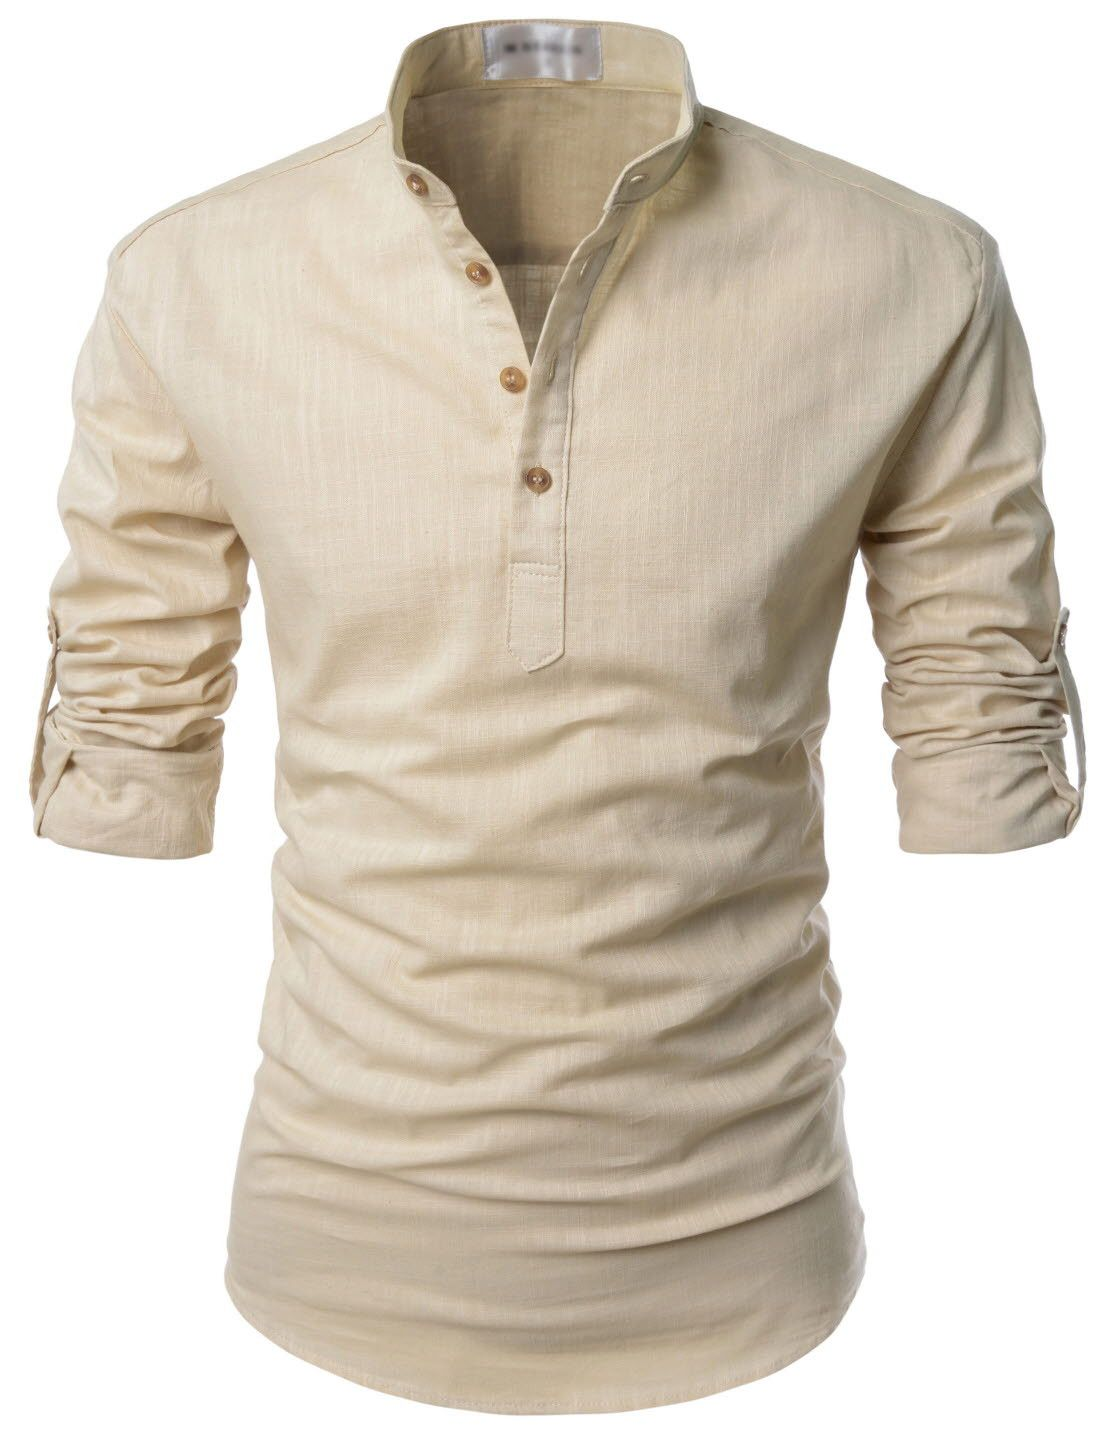 Bali Roll-up Linen Shirt | Man style and Men's fashion